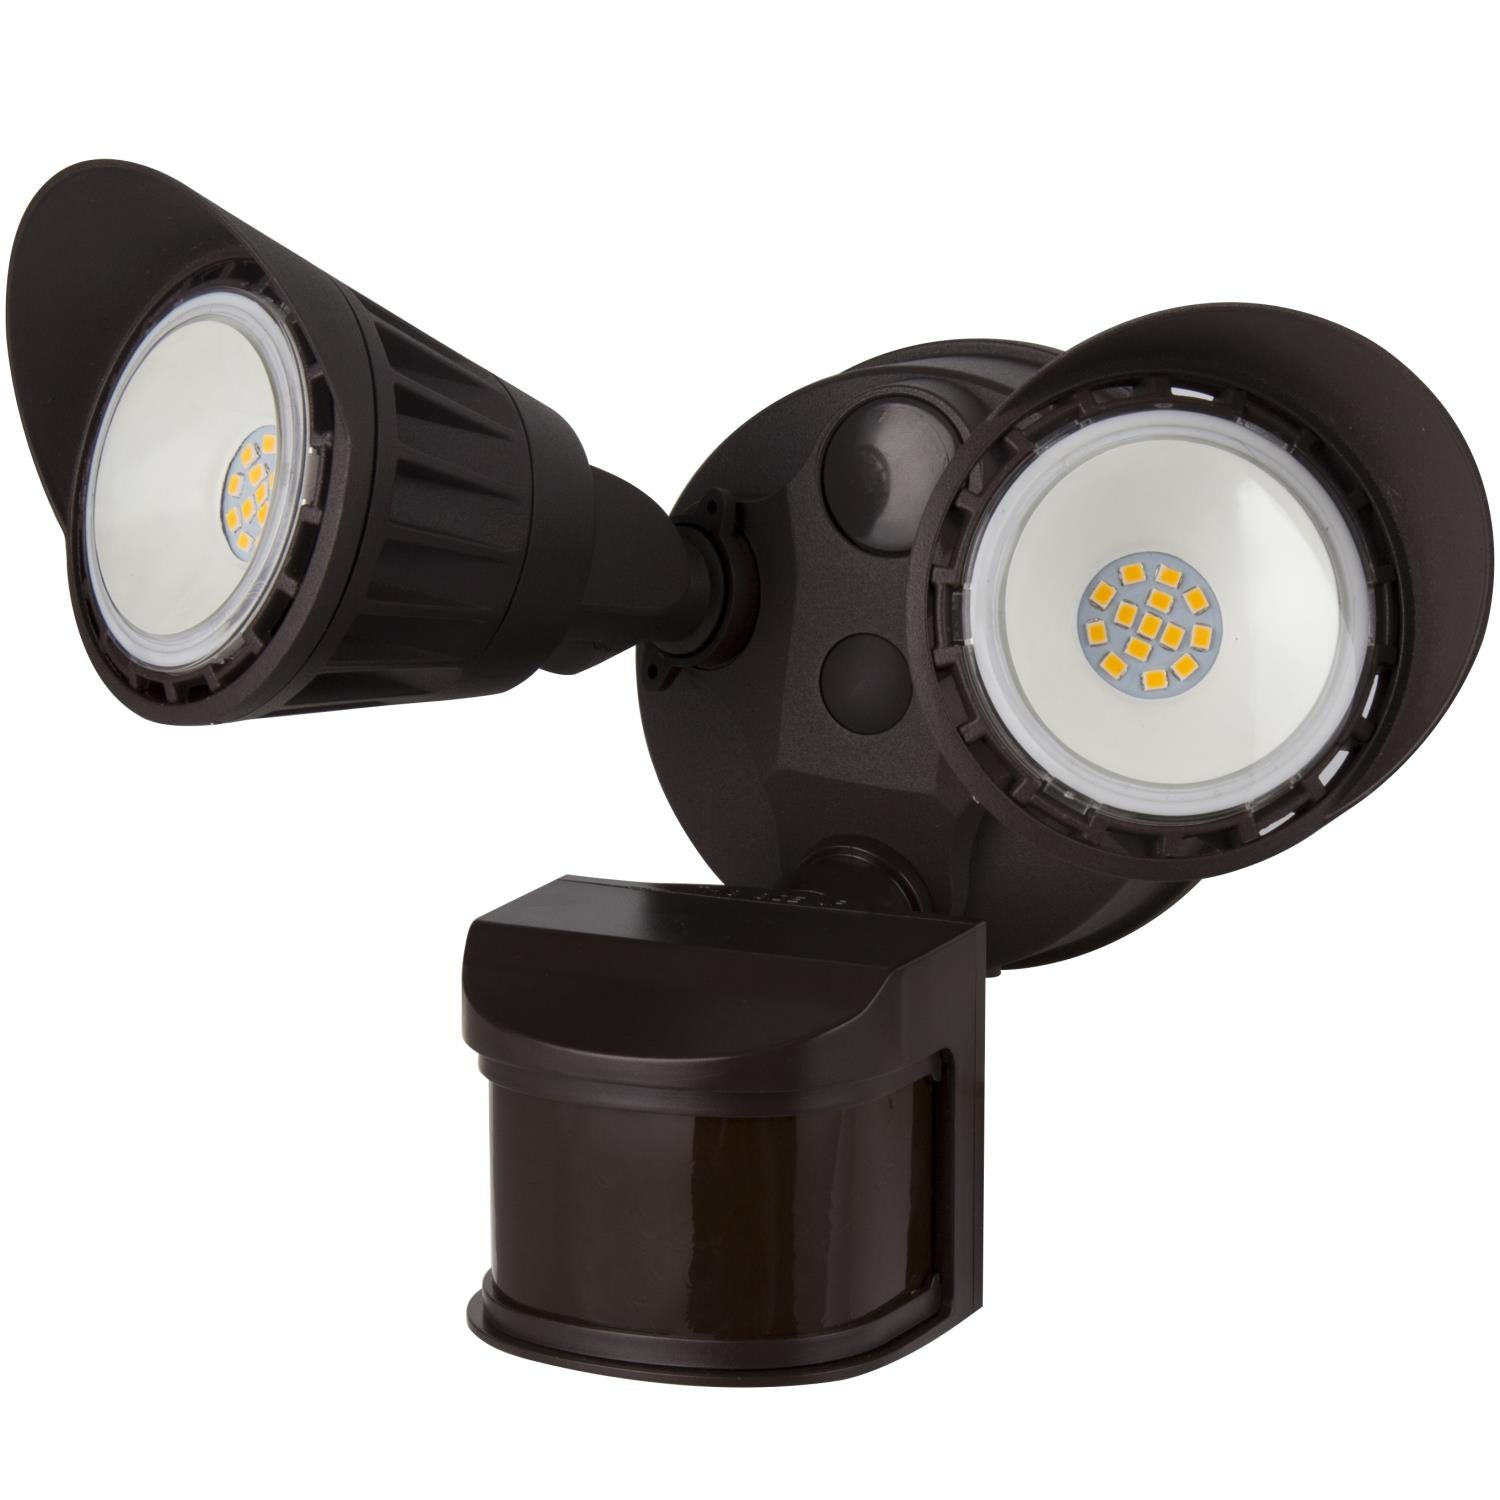 SUNLITE 20W LED Dual Head Security Light with Motion Sensor and Photocell Brown 5000K Super White